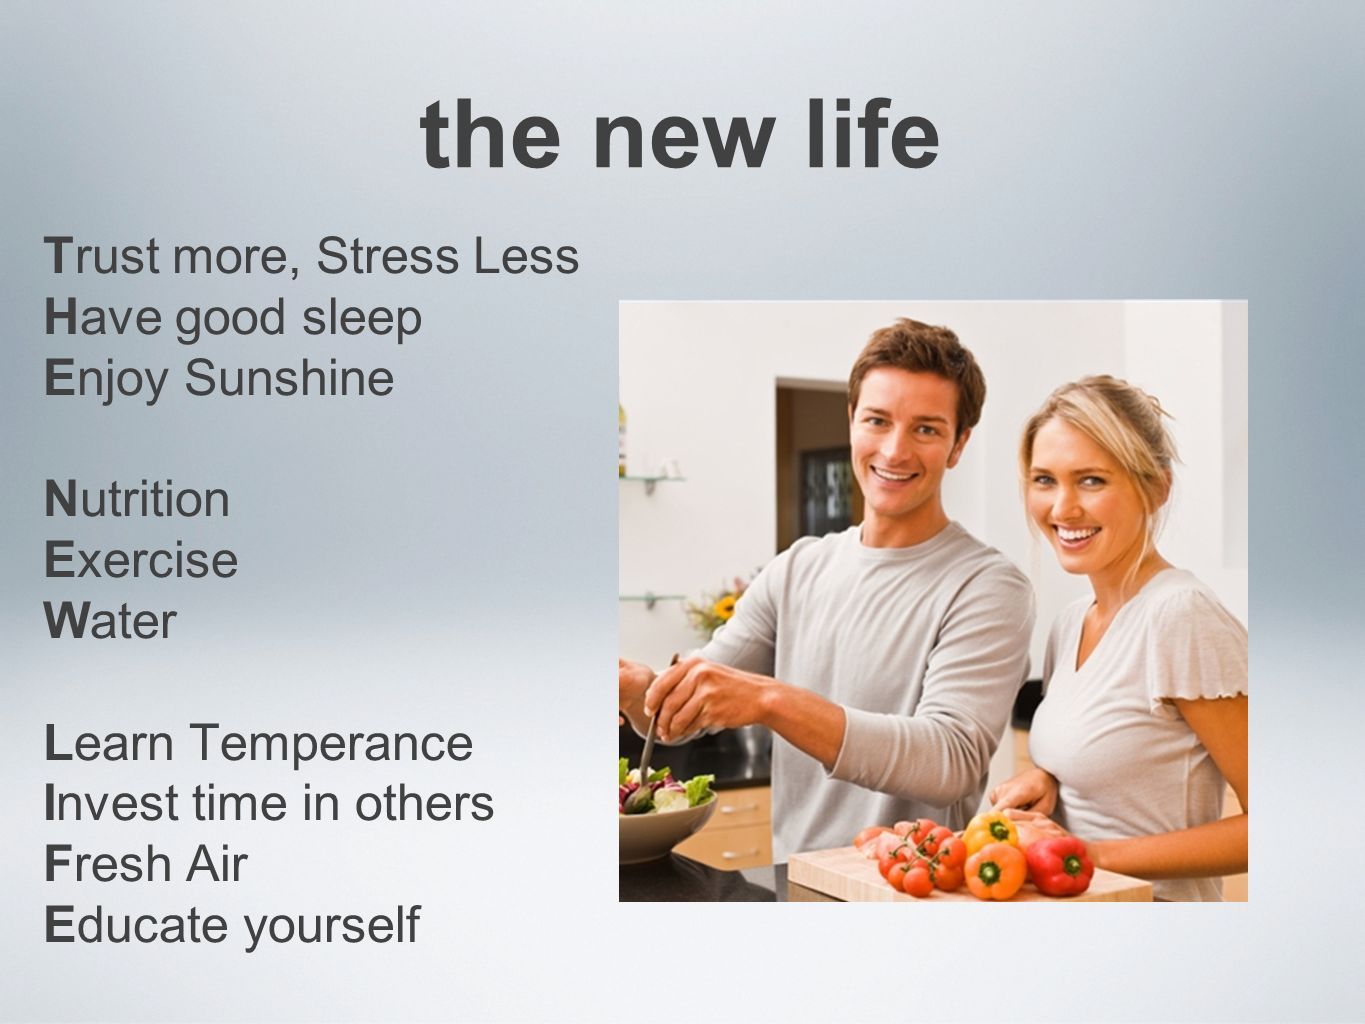 the new life Trust more, Stress Less Have good sleep Enjoy Sunshine Nutrition Exercise Water Learn Temperance Invest time in others Fresh Air Educate yourself